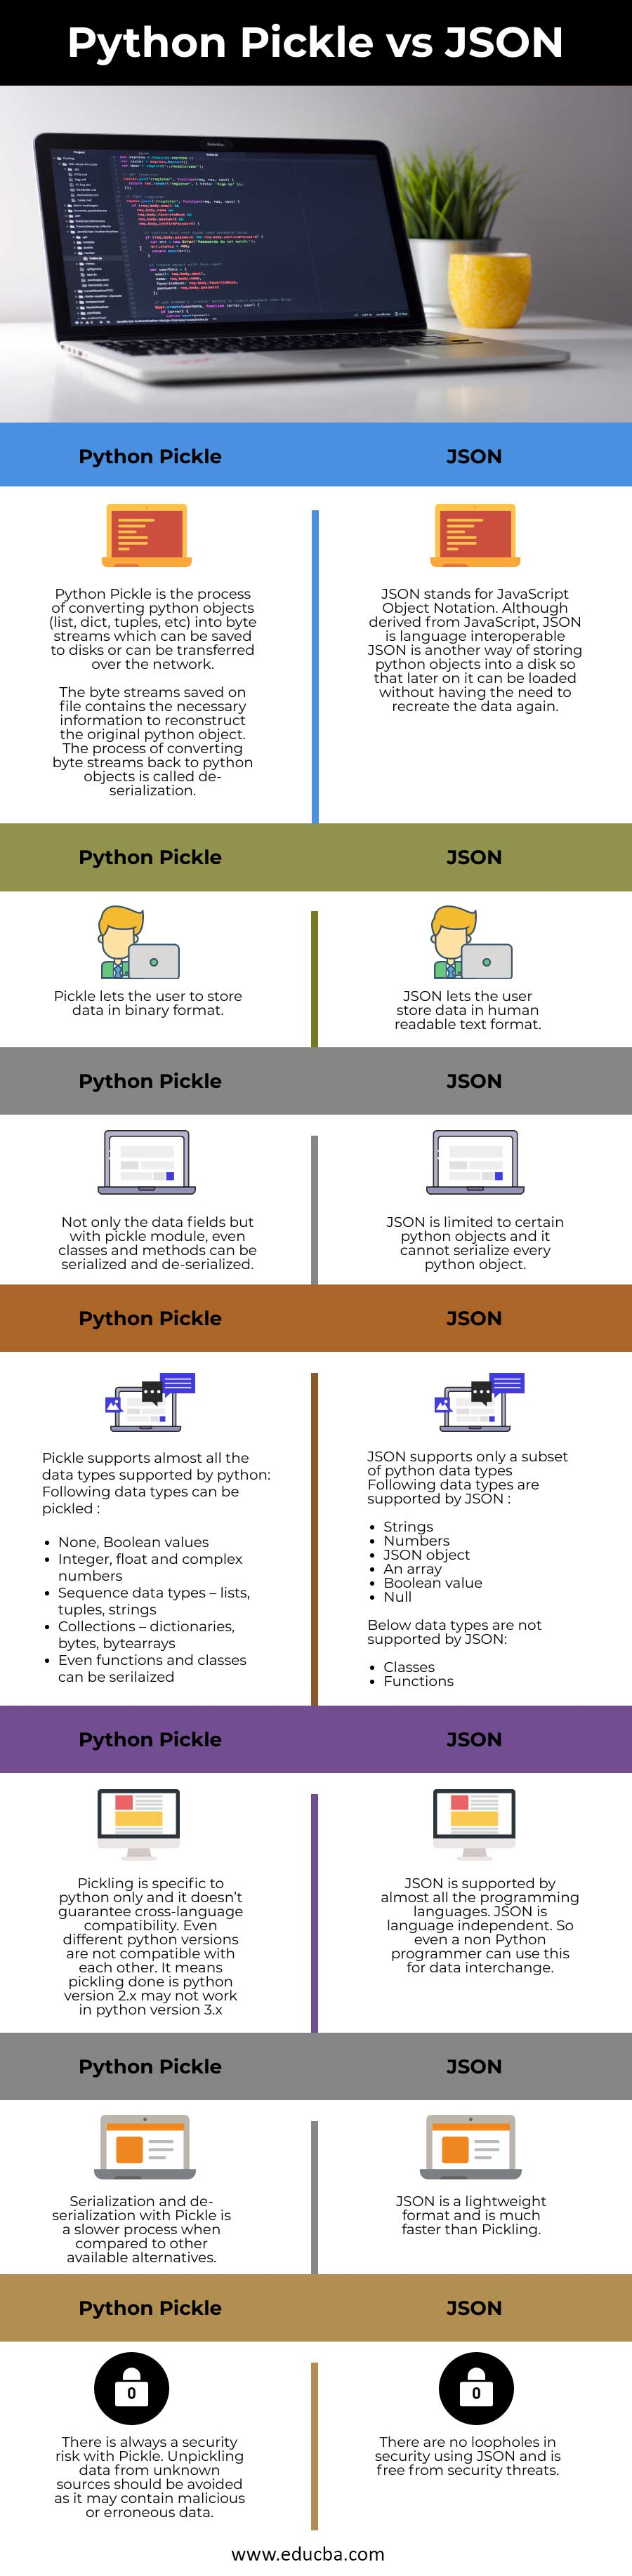 Python-Pickle-vs-JSON-info